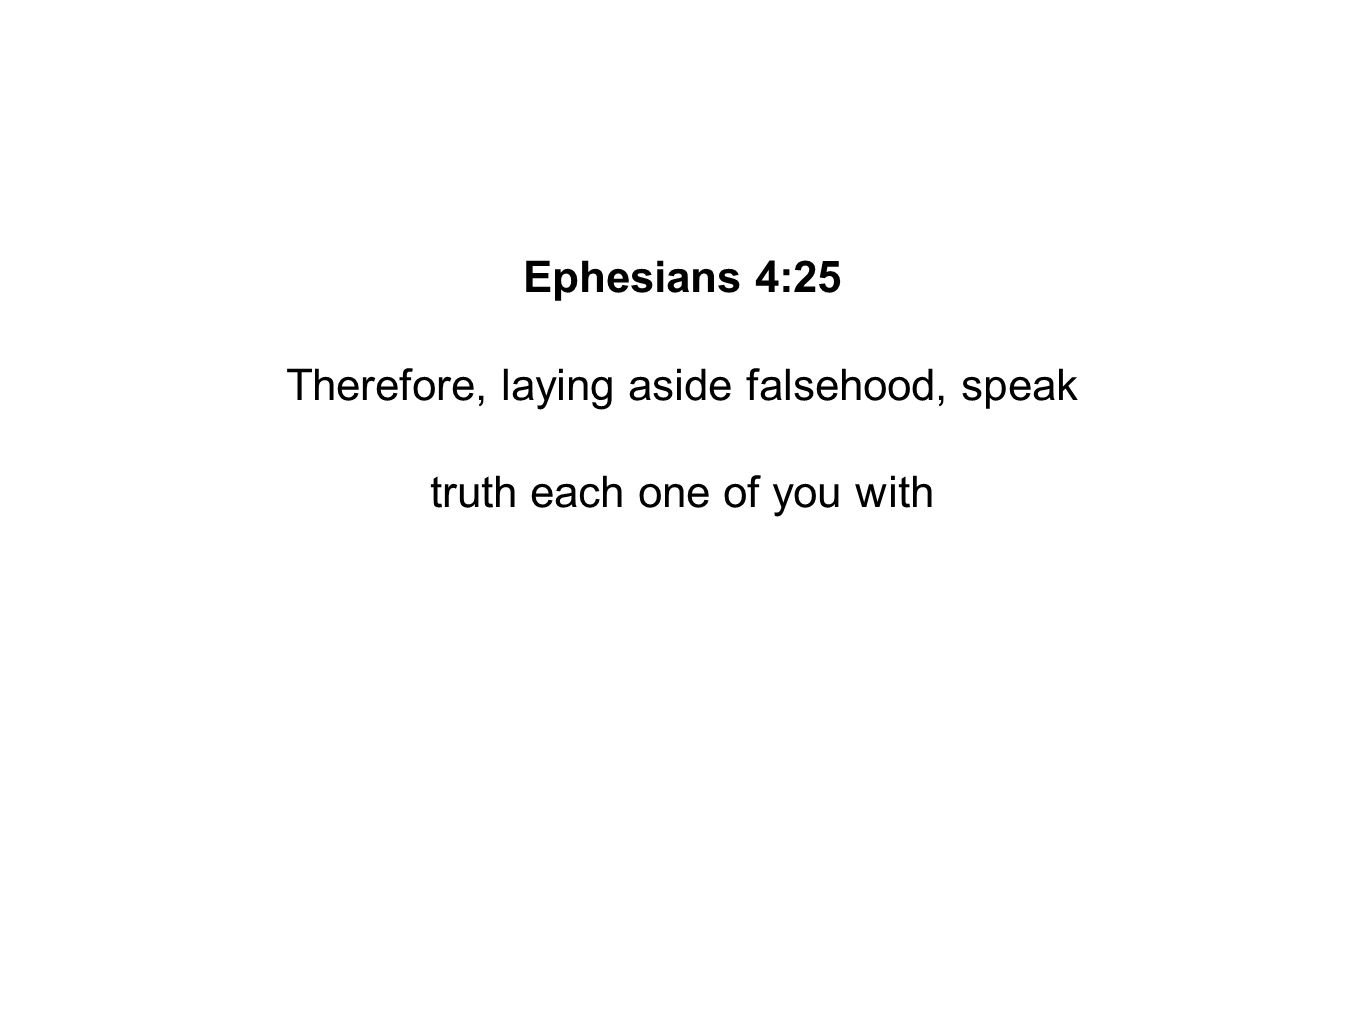 Ephesians 4:25 Therefore, laying aside falsehood, speak truth each one of you with